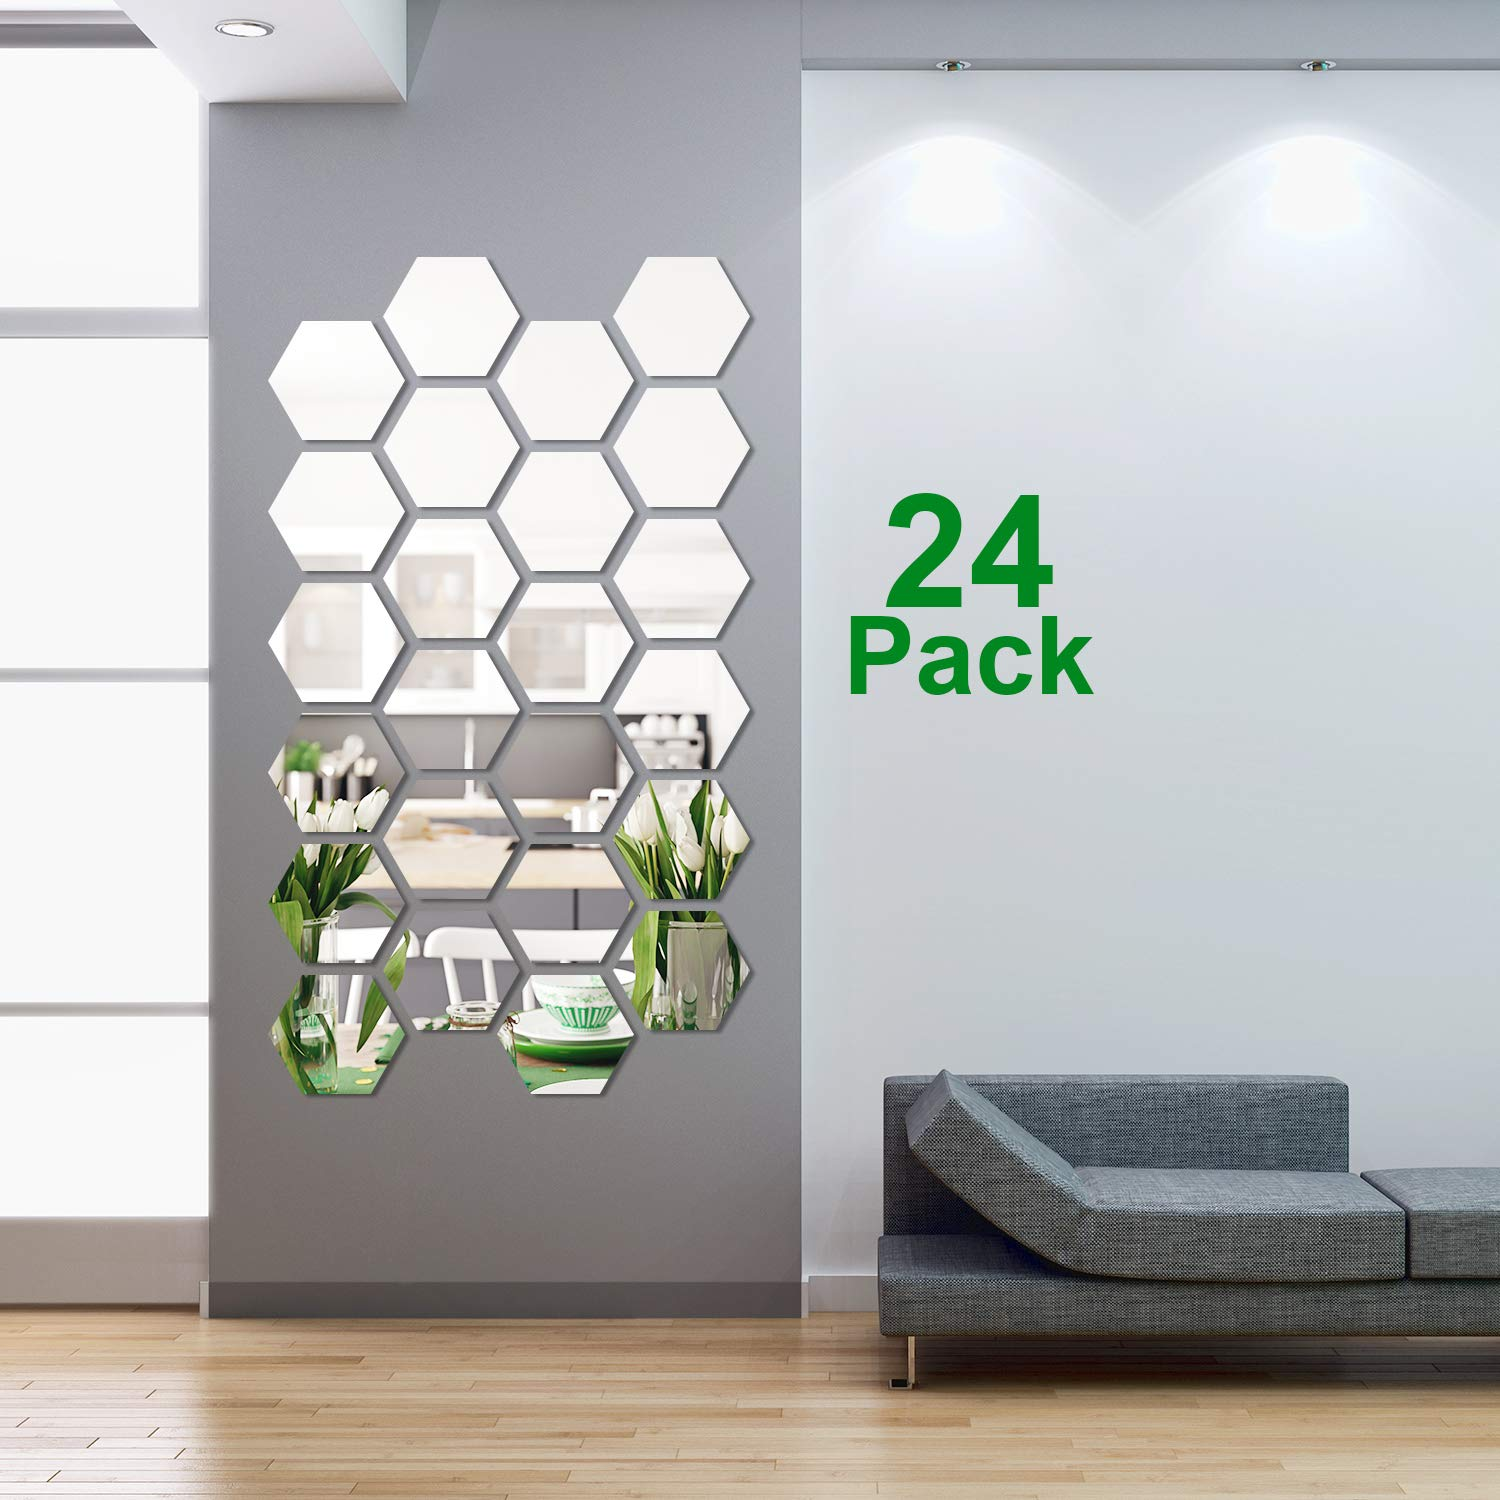 24 Pieces Removable Acrylic Mirror Setting Wall Sticker Decal for Home Living Room Bedroom Decor (Style 3, 24 Pieces) by Shappy